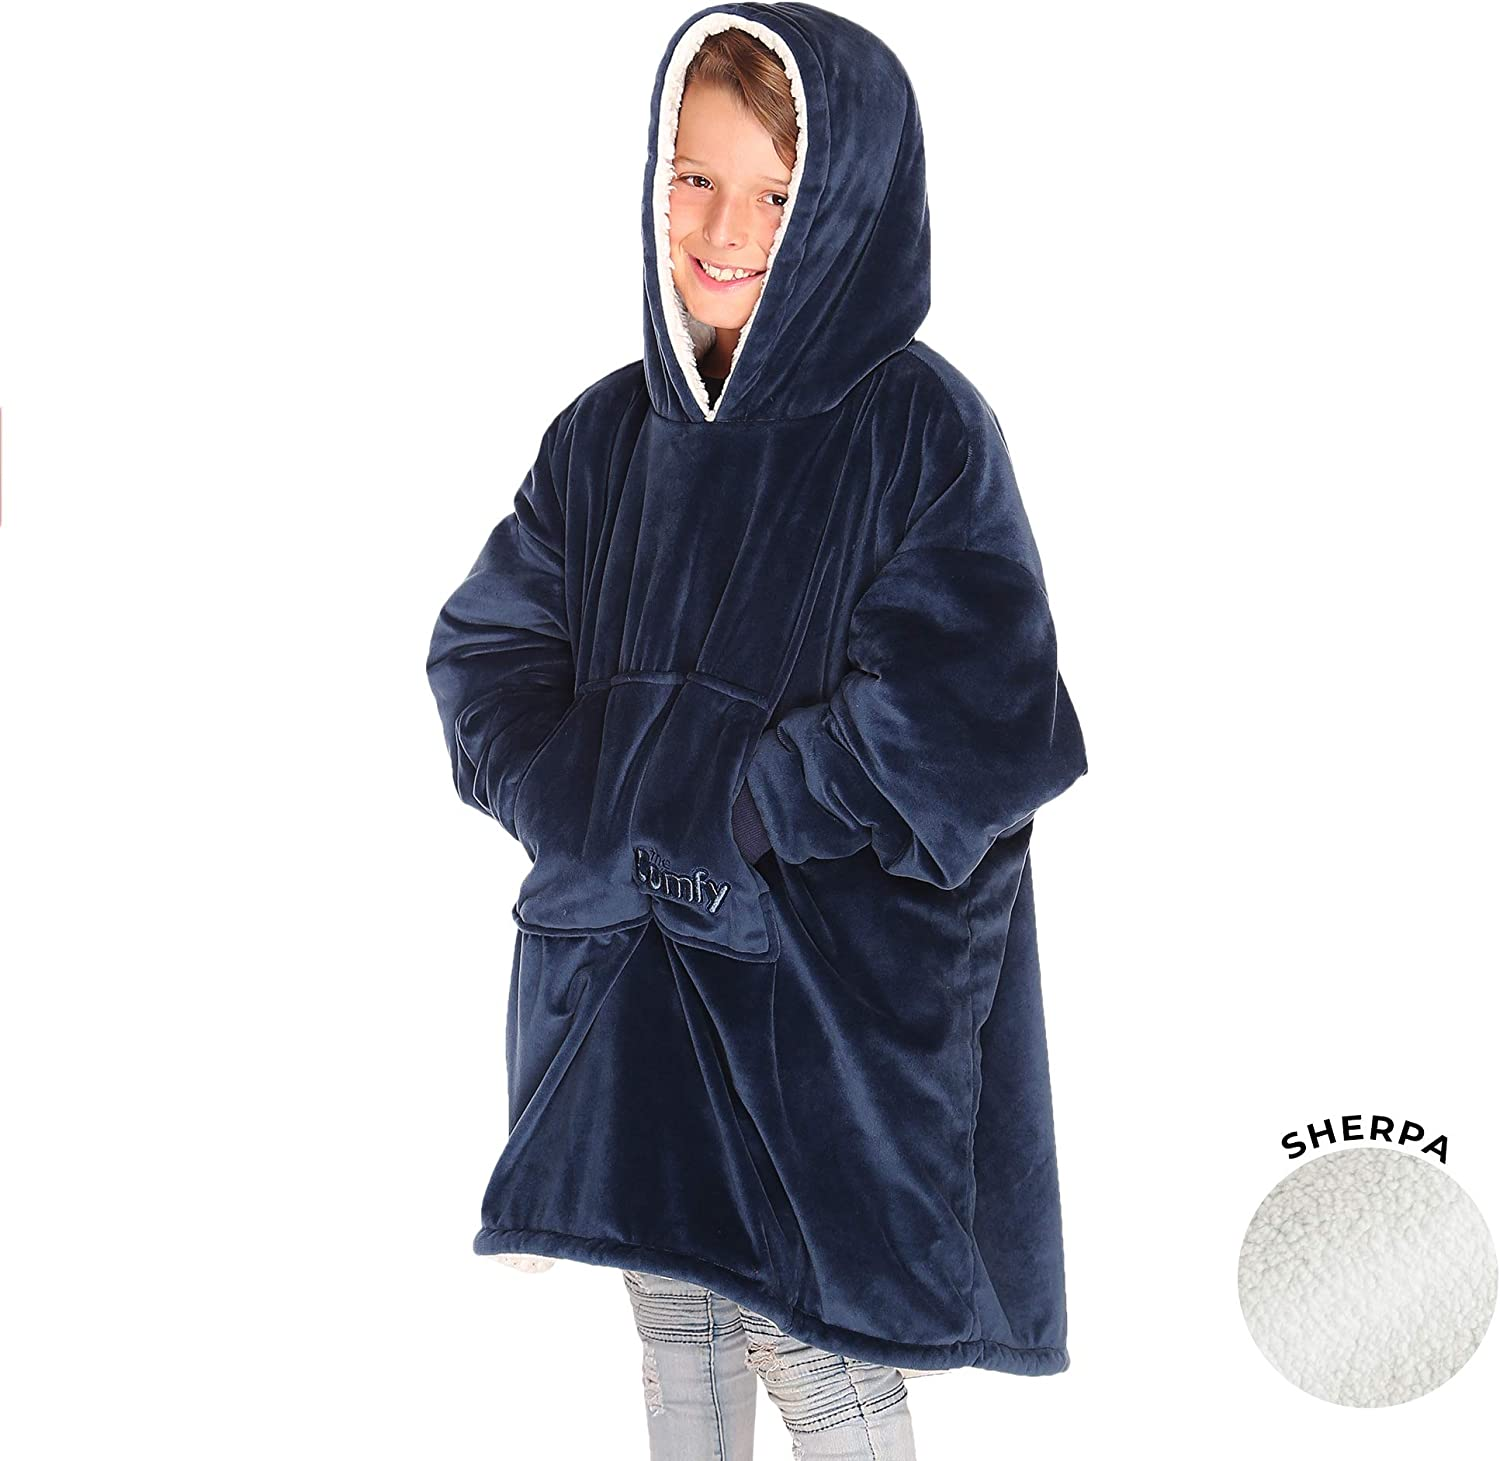 THE COMFY | The Original Oversized Sherpa Blanket for Kids, Seen On Shark Tank, One Size Fits All